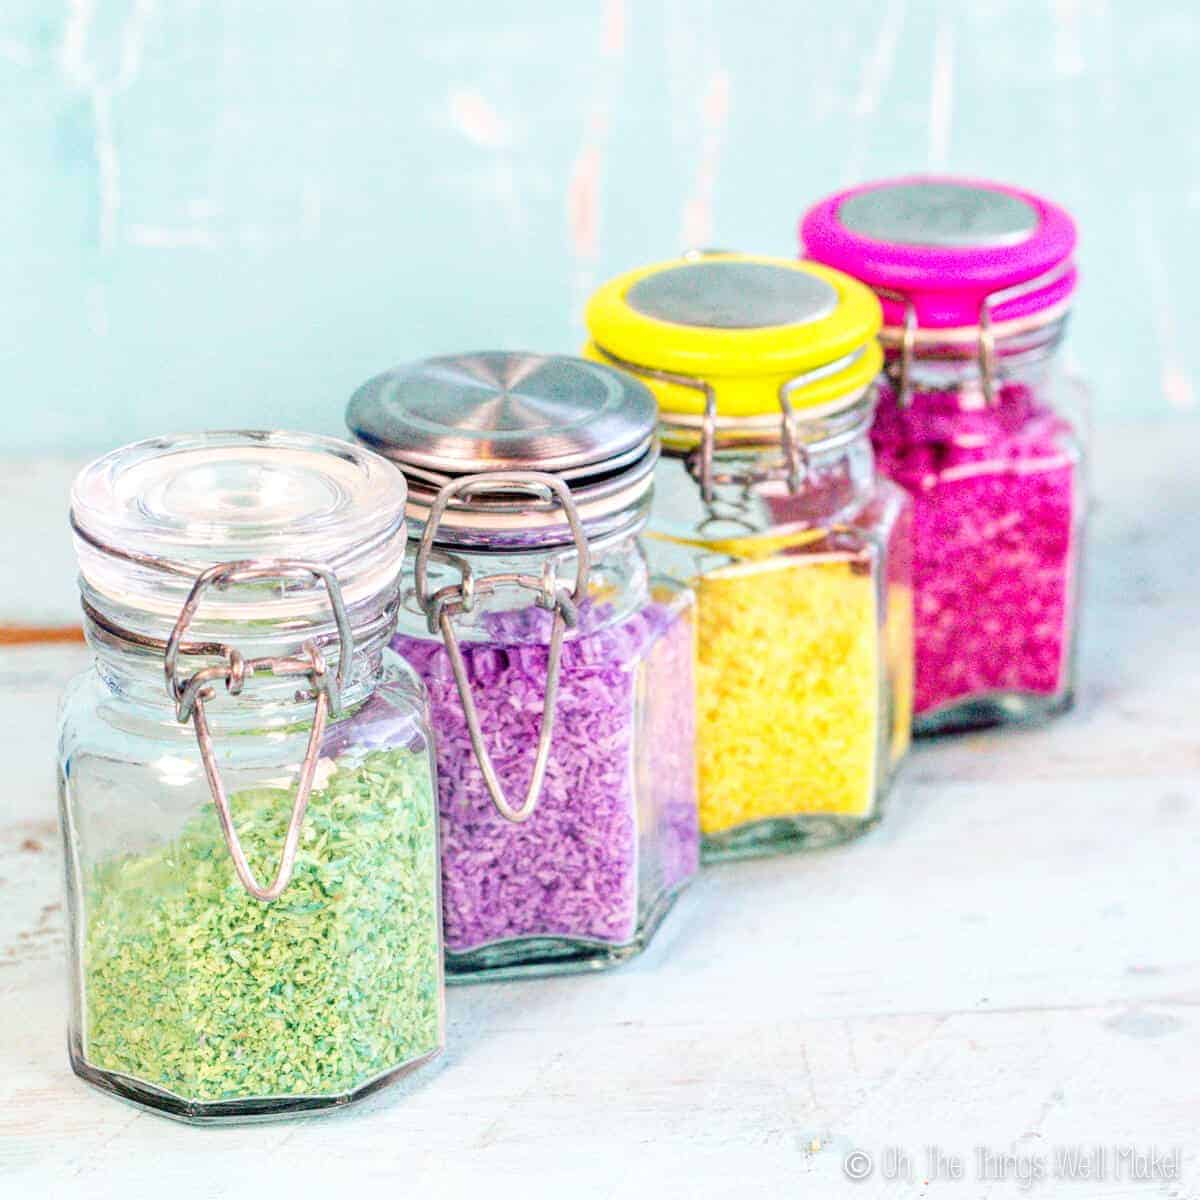 4 glass jars filled with 4 different types of colorful sprinkles made from shredded coconut. From left to right: green, purple, yellow, and bright pink.